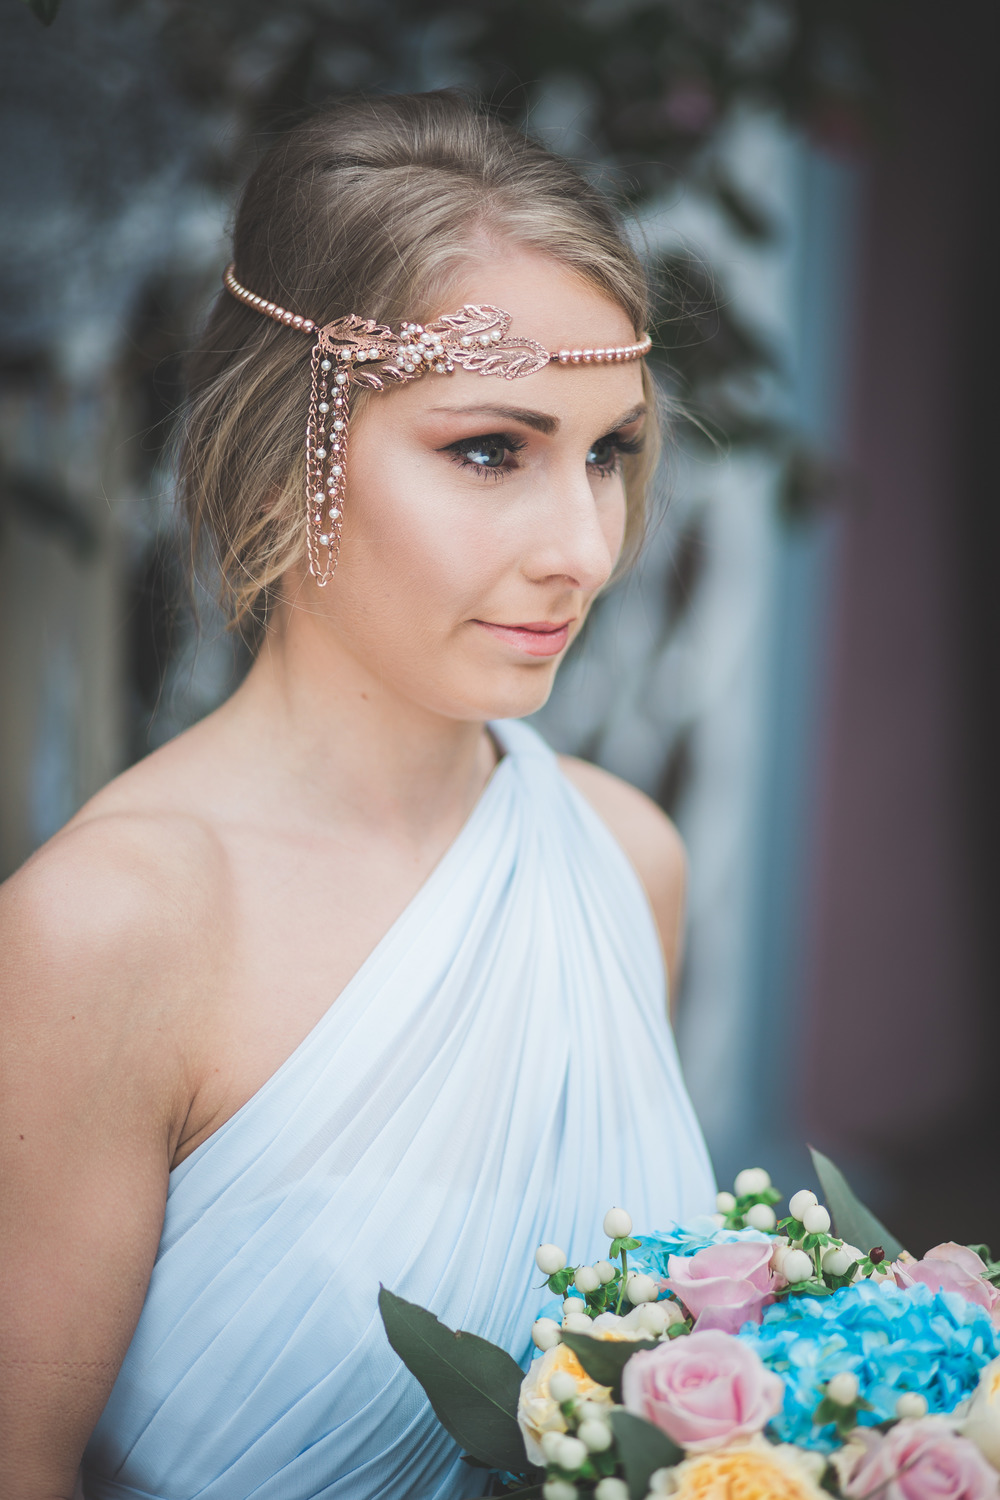 Dreamcatcher collection, LHG Designs, bridal hair accessories, image - Tandem PhotographyDreamcatcher collection, LHG Designs, bridal hair accessories, image - Tandem Photography